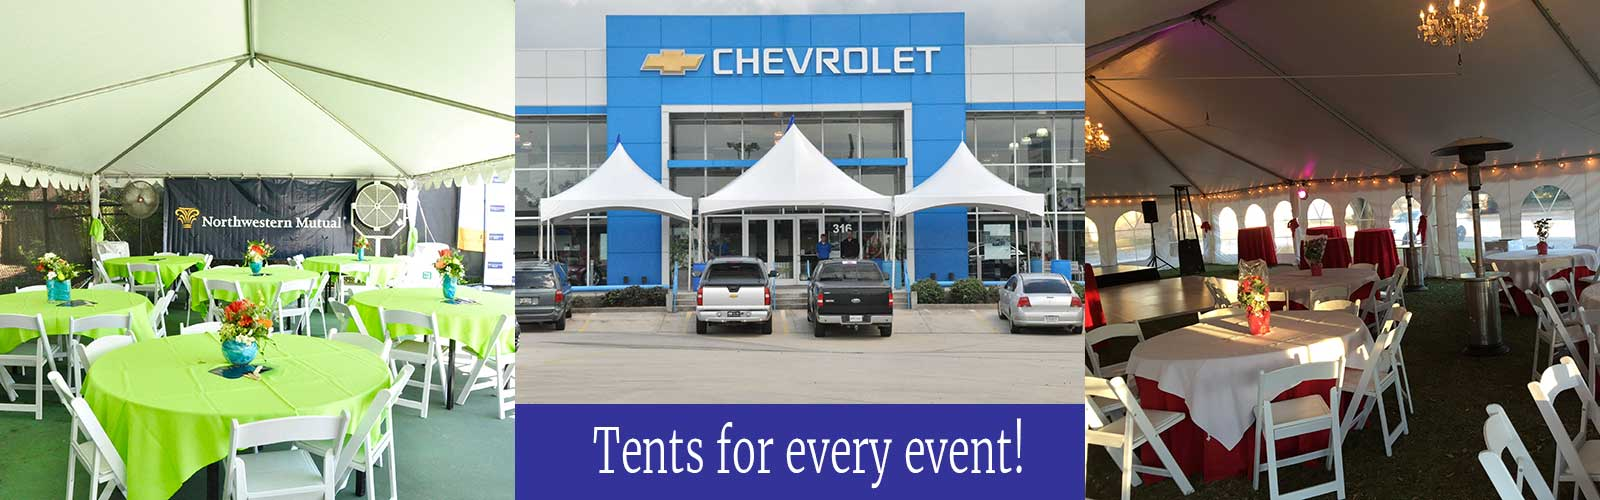 Event rentals in St. Tammany Parish